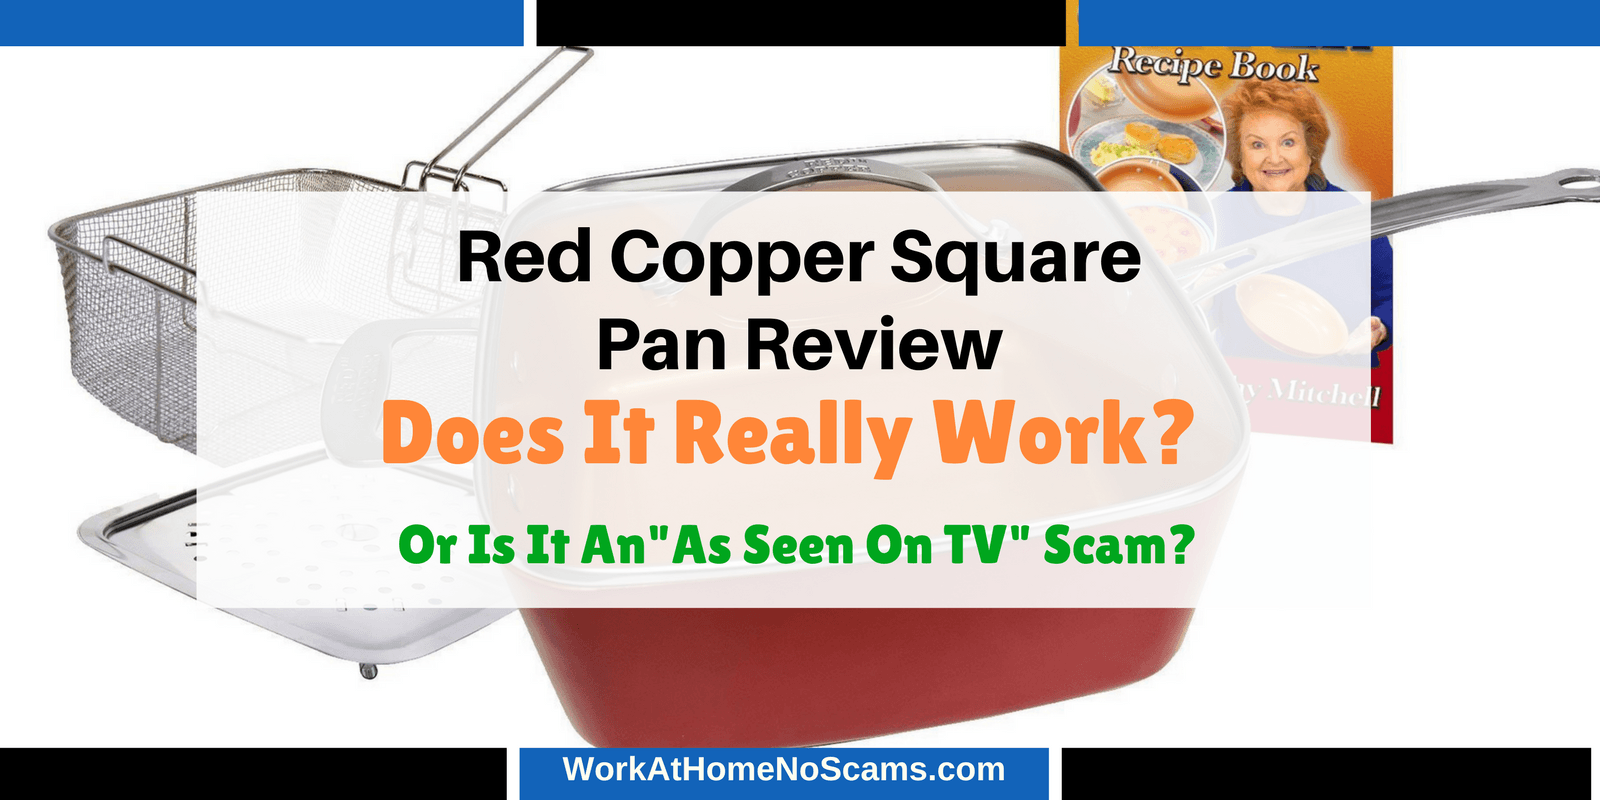 Red Copper Square Pan Review